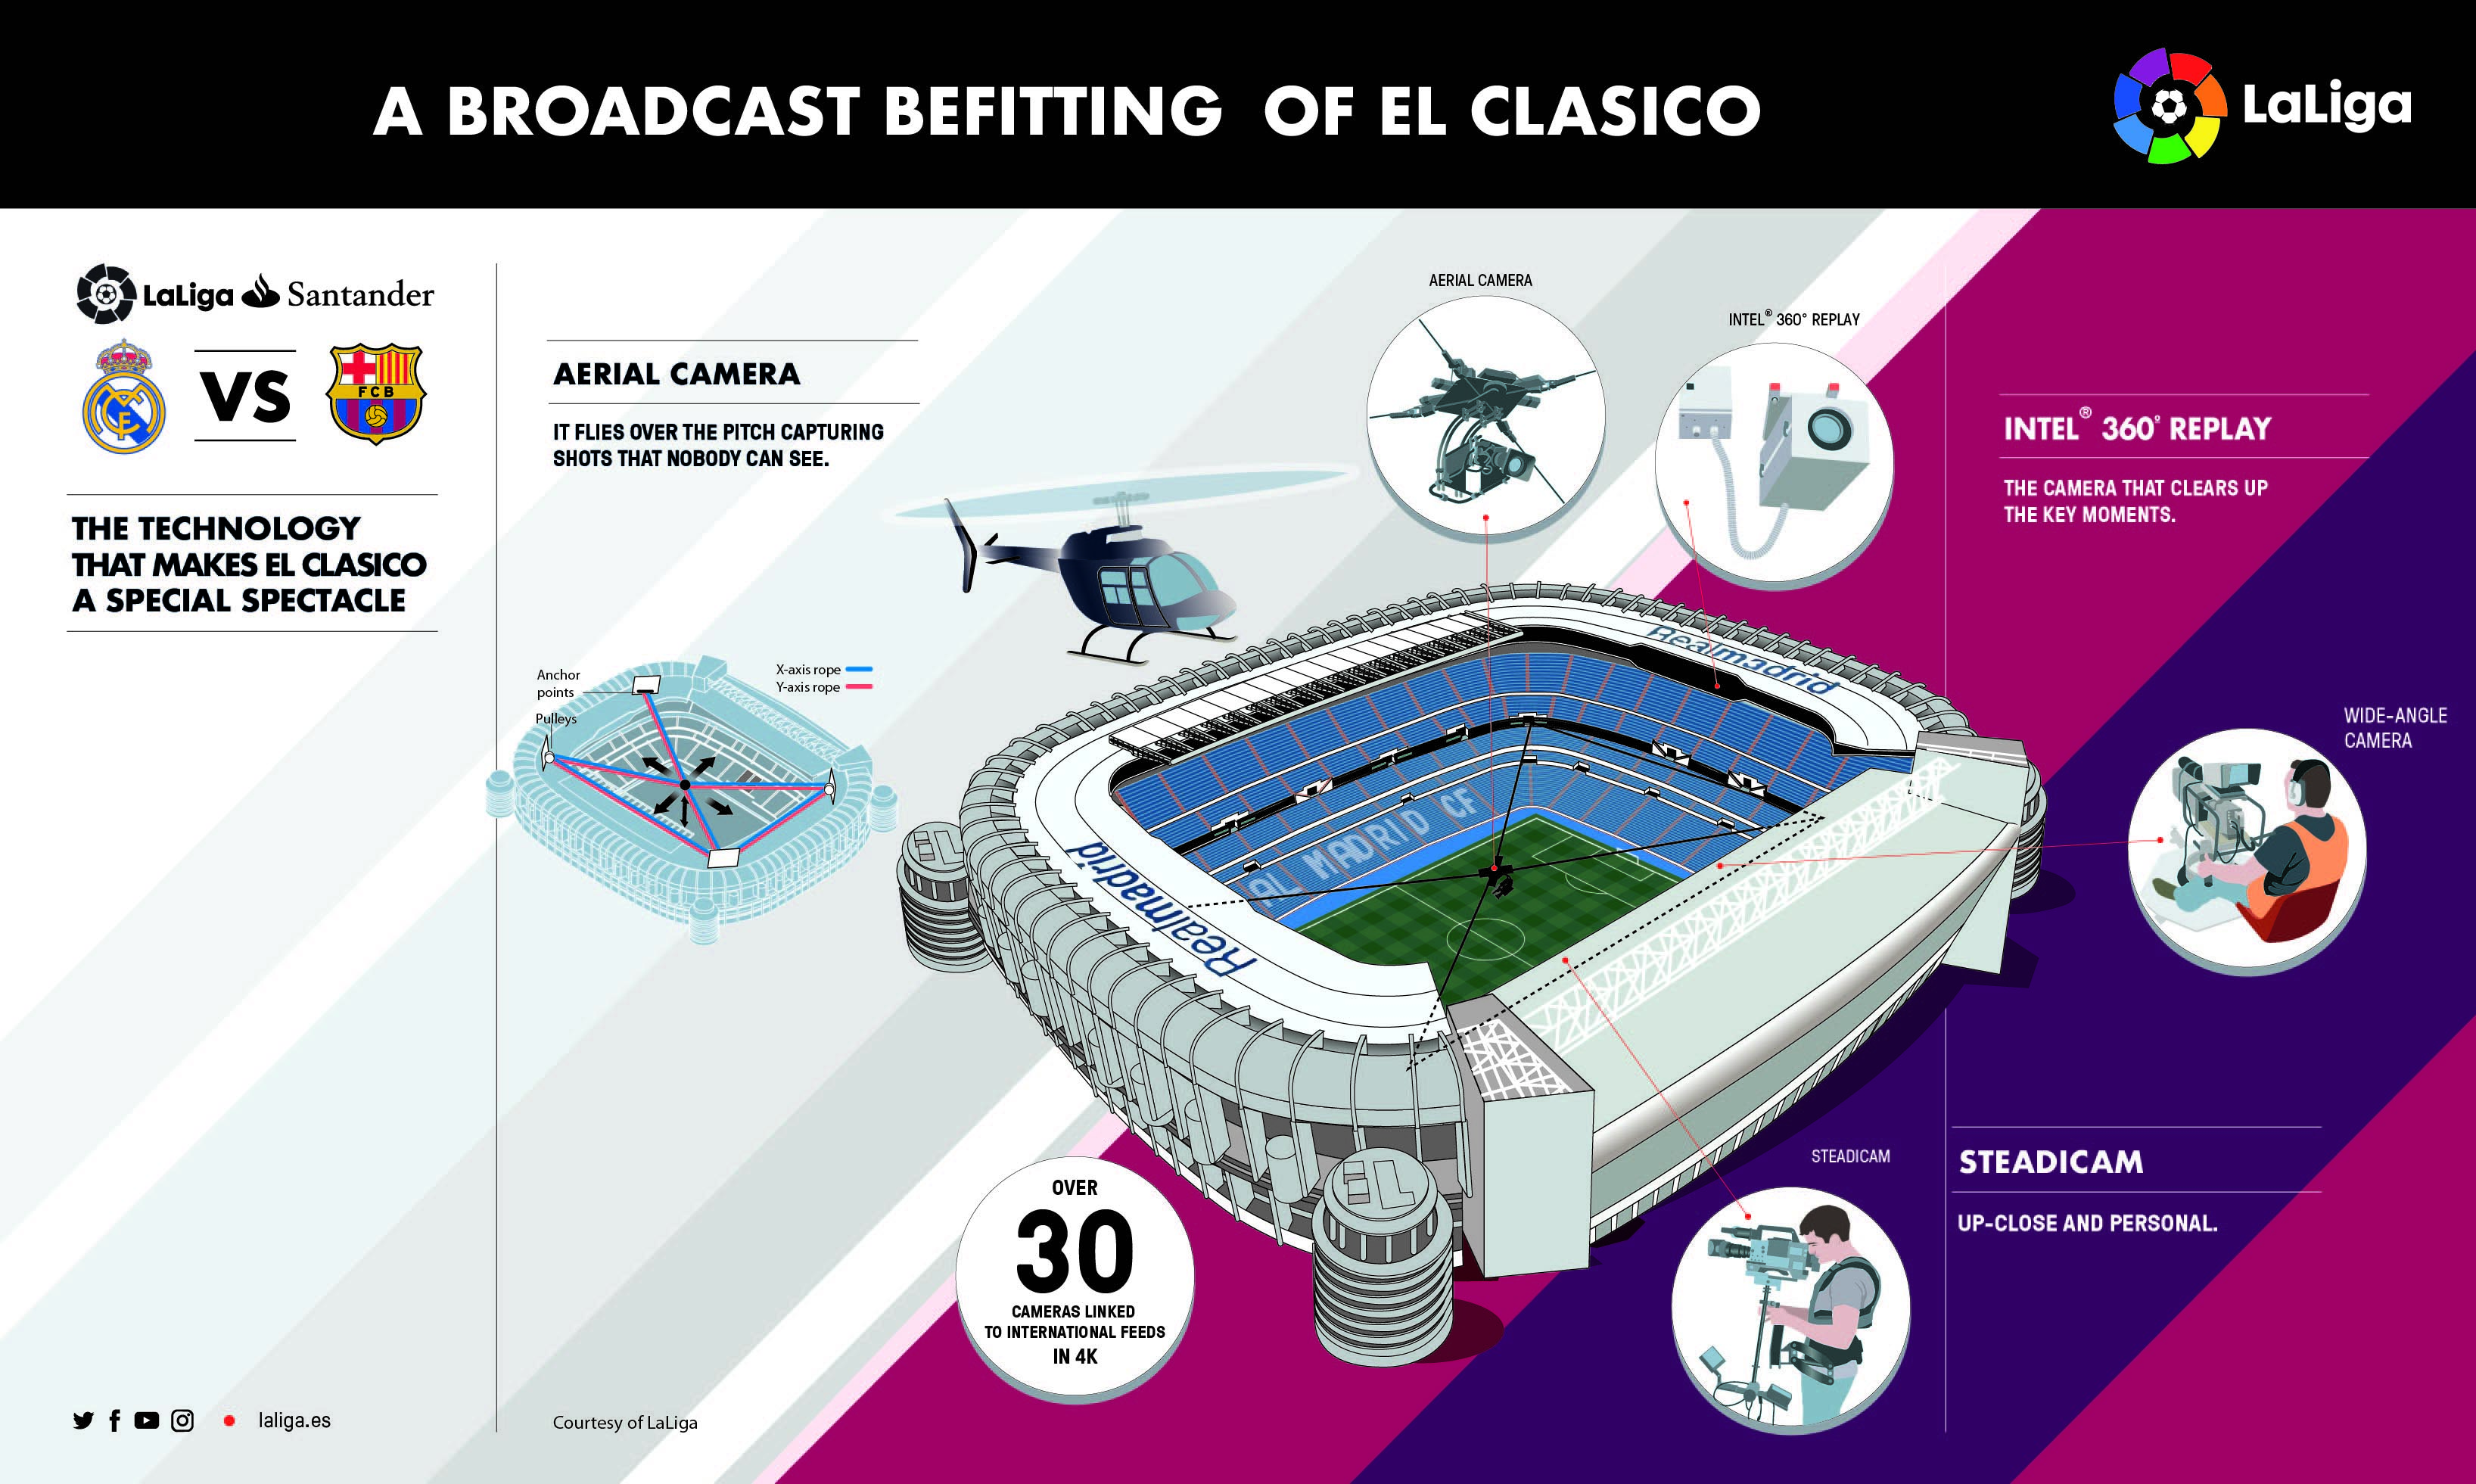 Special Cameras For Ronaldo, Messi As El Clasico Is Covered With Cutting-Edge Technology